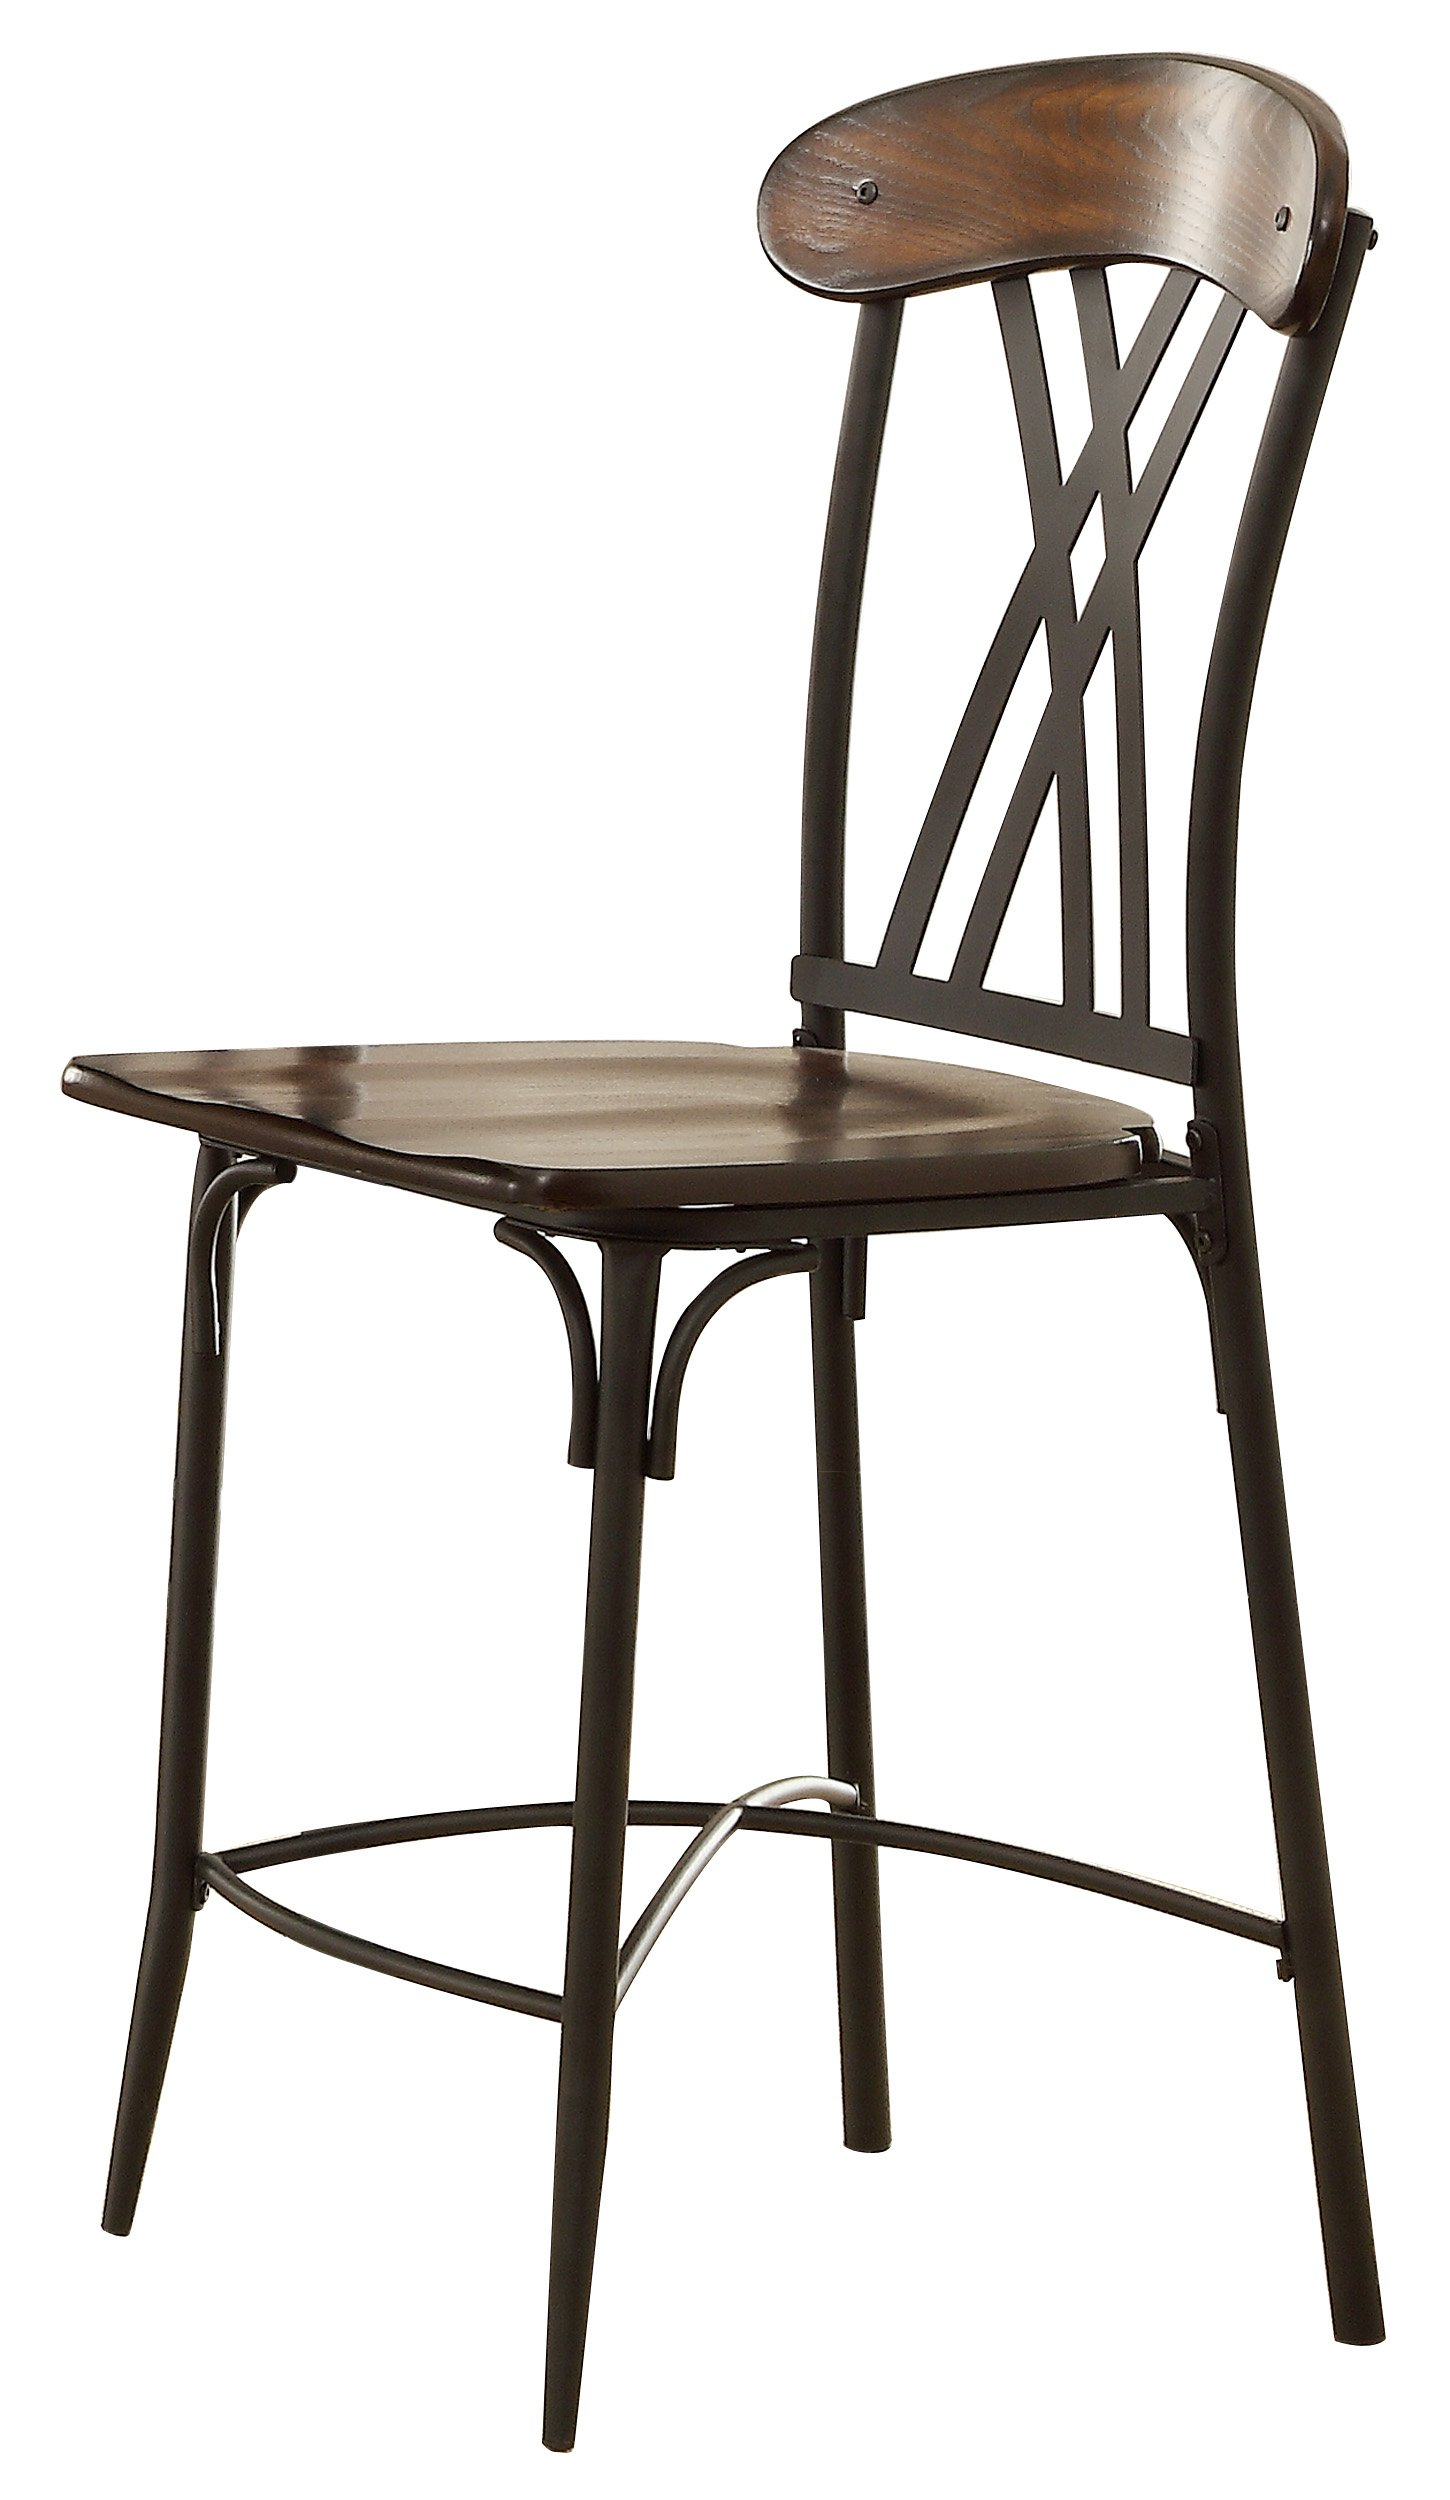 Homelegance 5149-24 Wood and Metal Counter Height Chair, Brown/Black, Set of 4